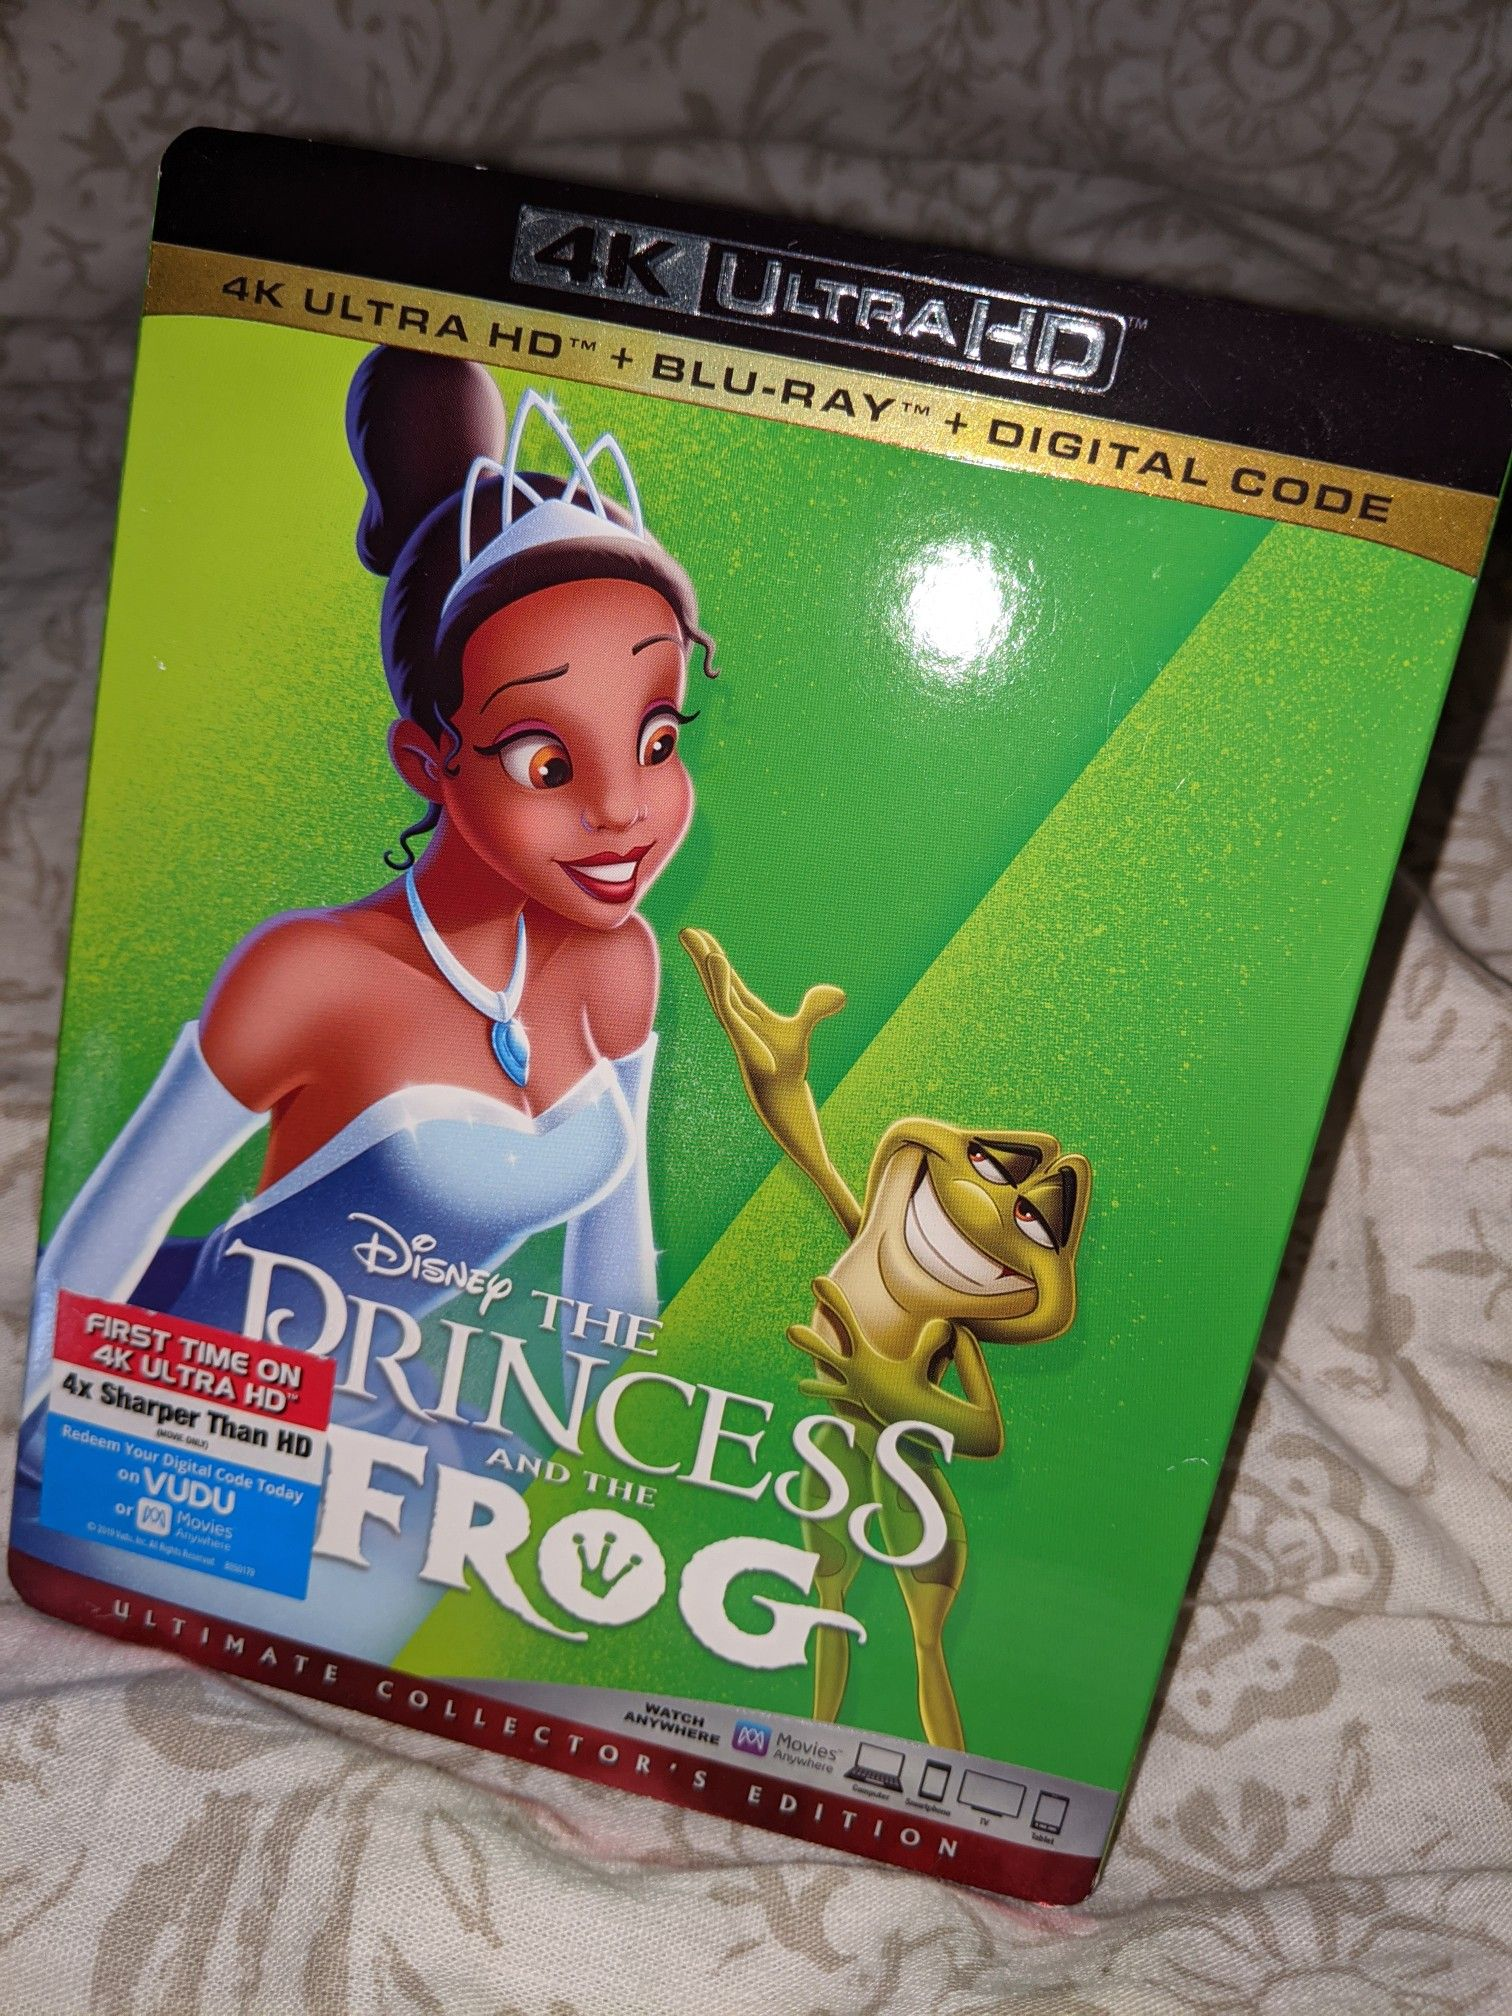 Princess and the frog 4k Blu-ray with digital code